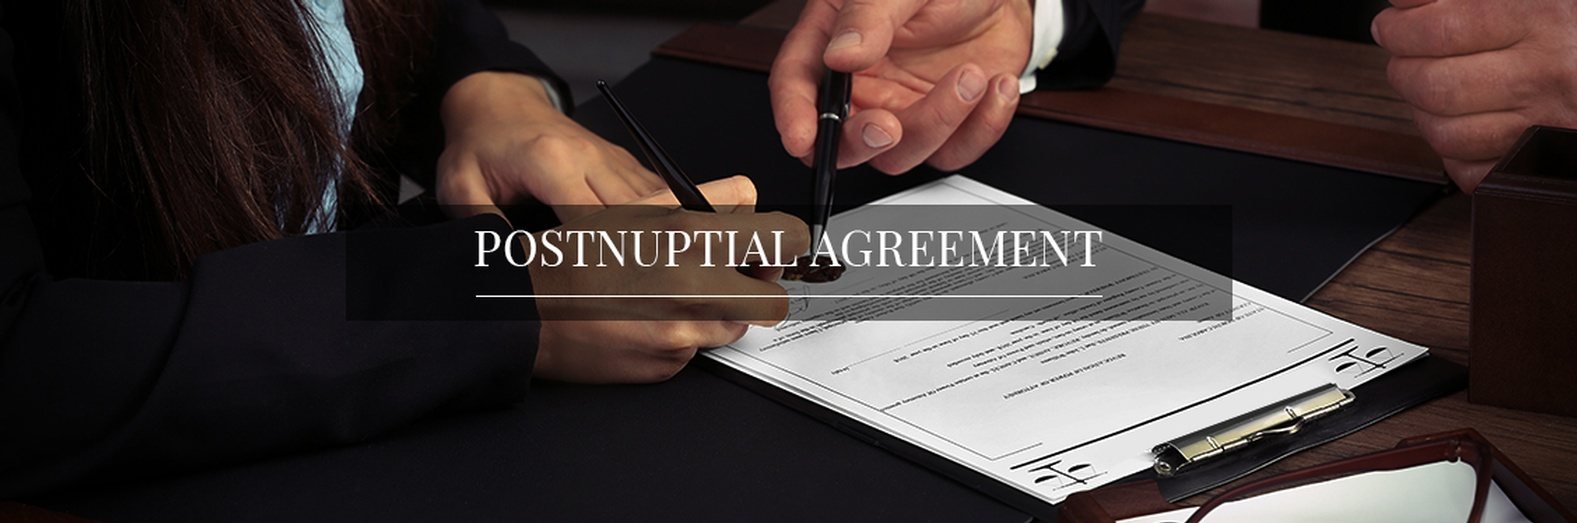 Postnuptial Agreements Law Firm Pembroke Pines FL